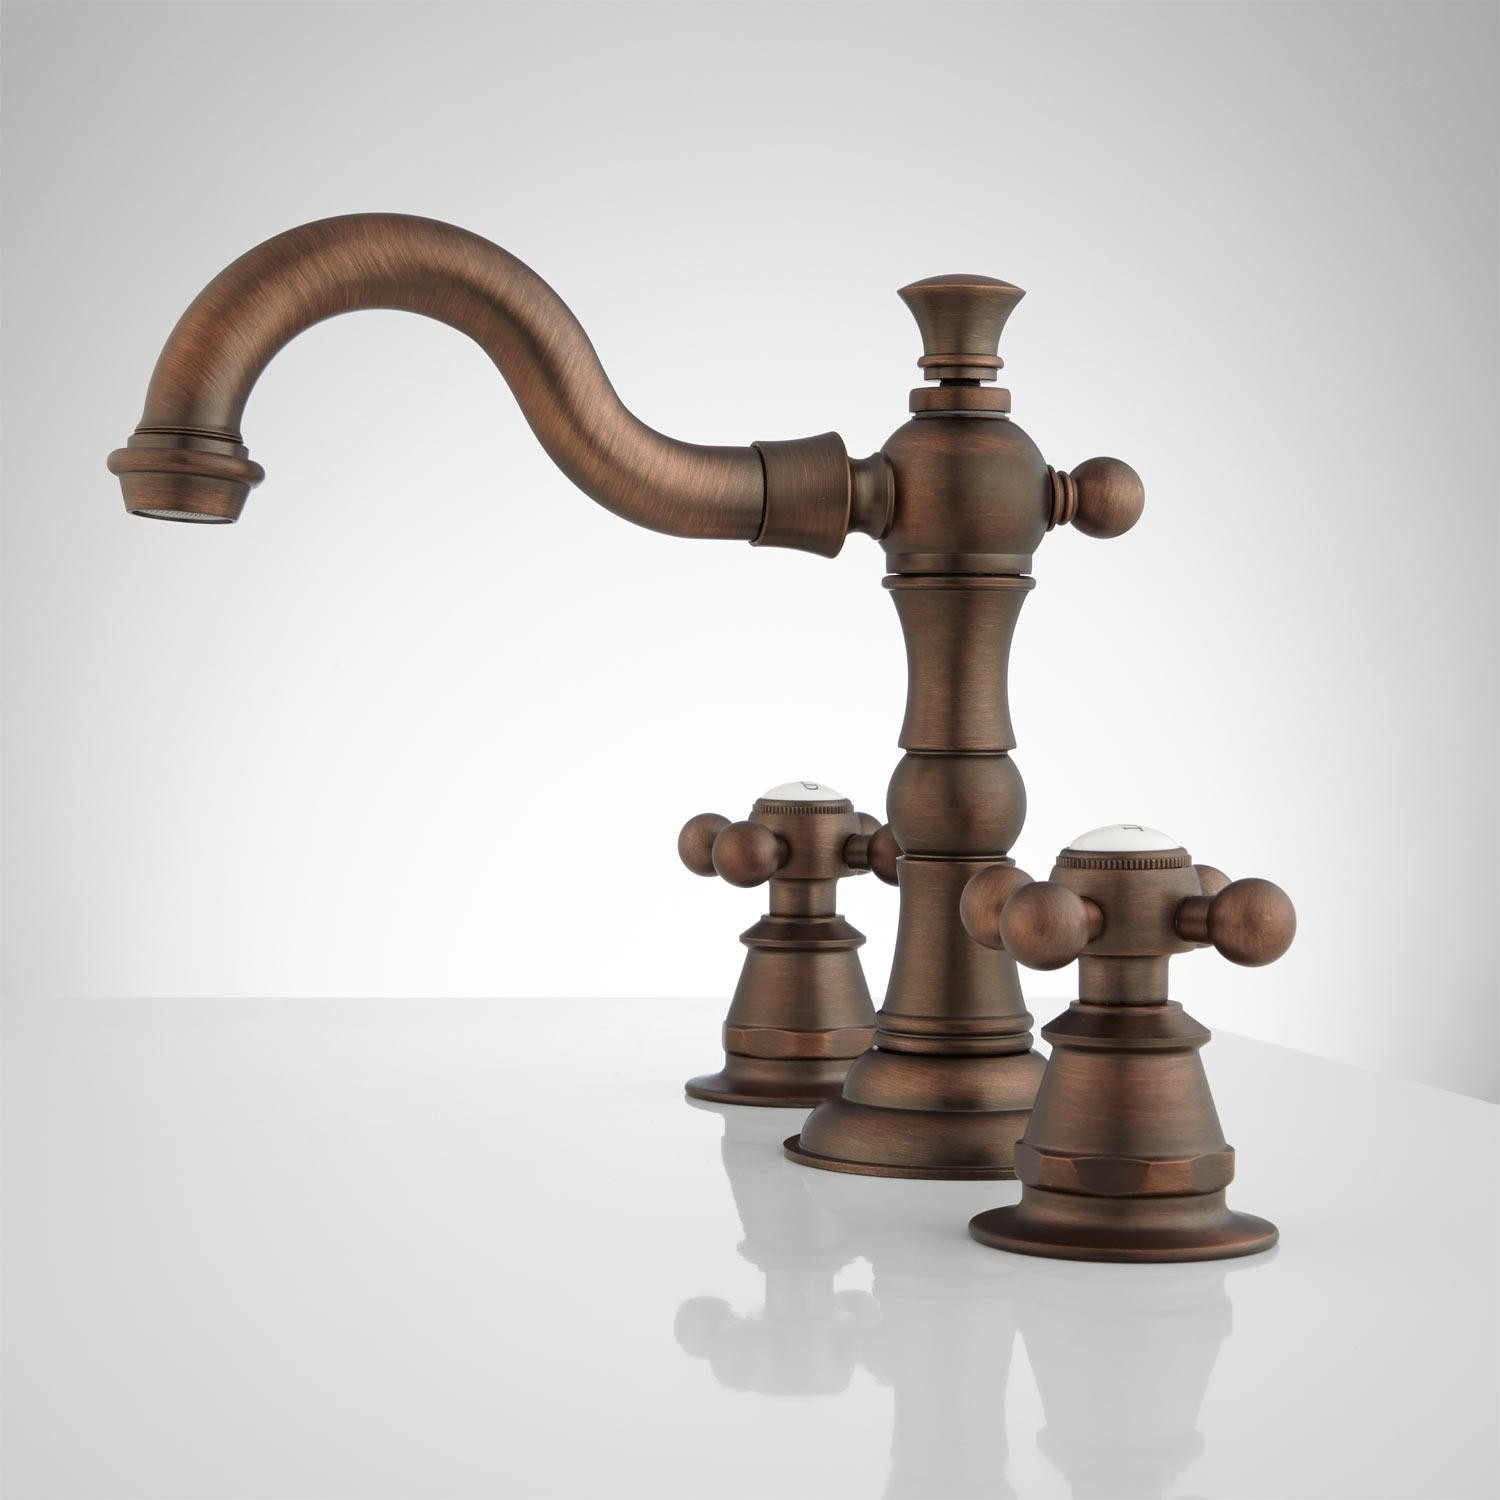 Ideas, brushed bronze bath faucets brushed bronze bath faucets roseanna widespread bathroom faucet metal cross handles oil 1500 x 1500  .